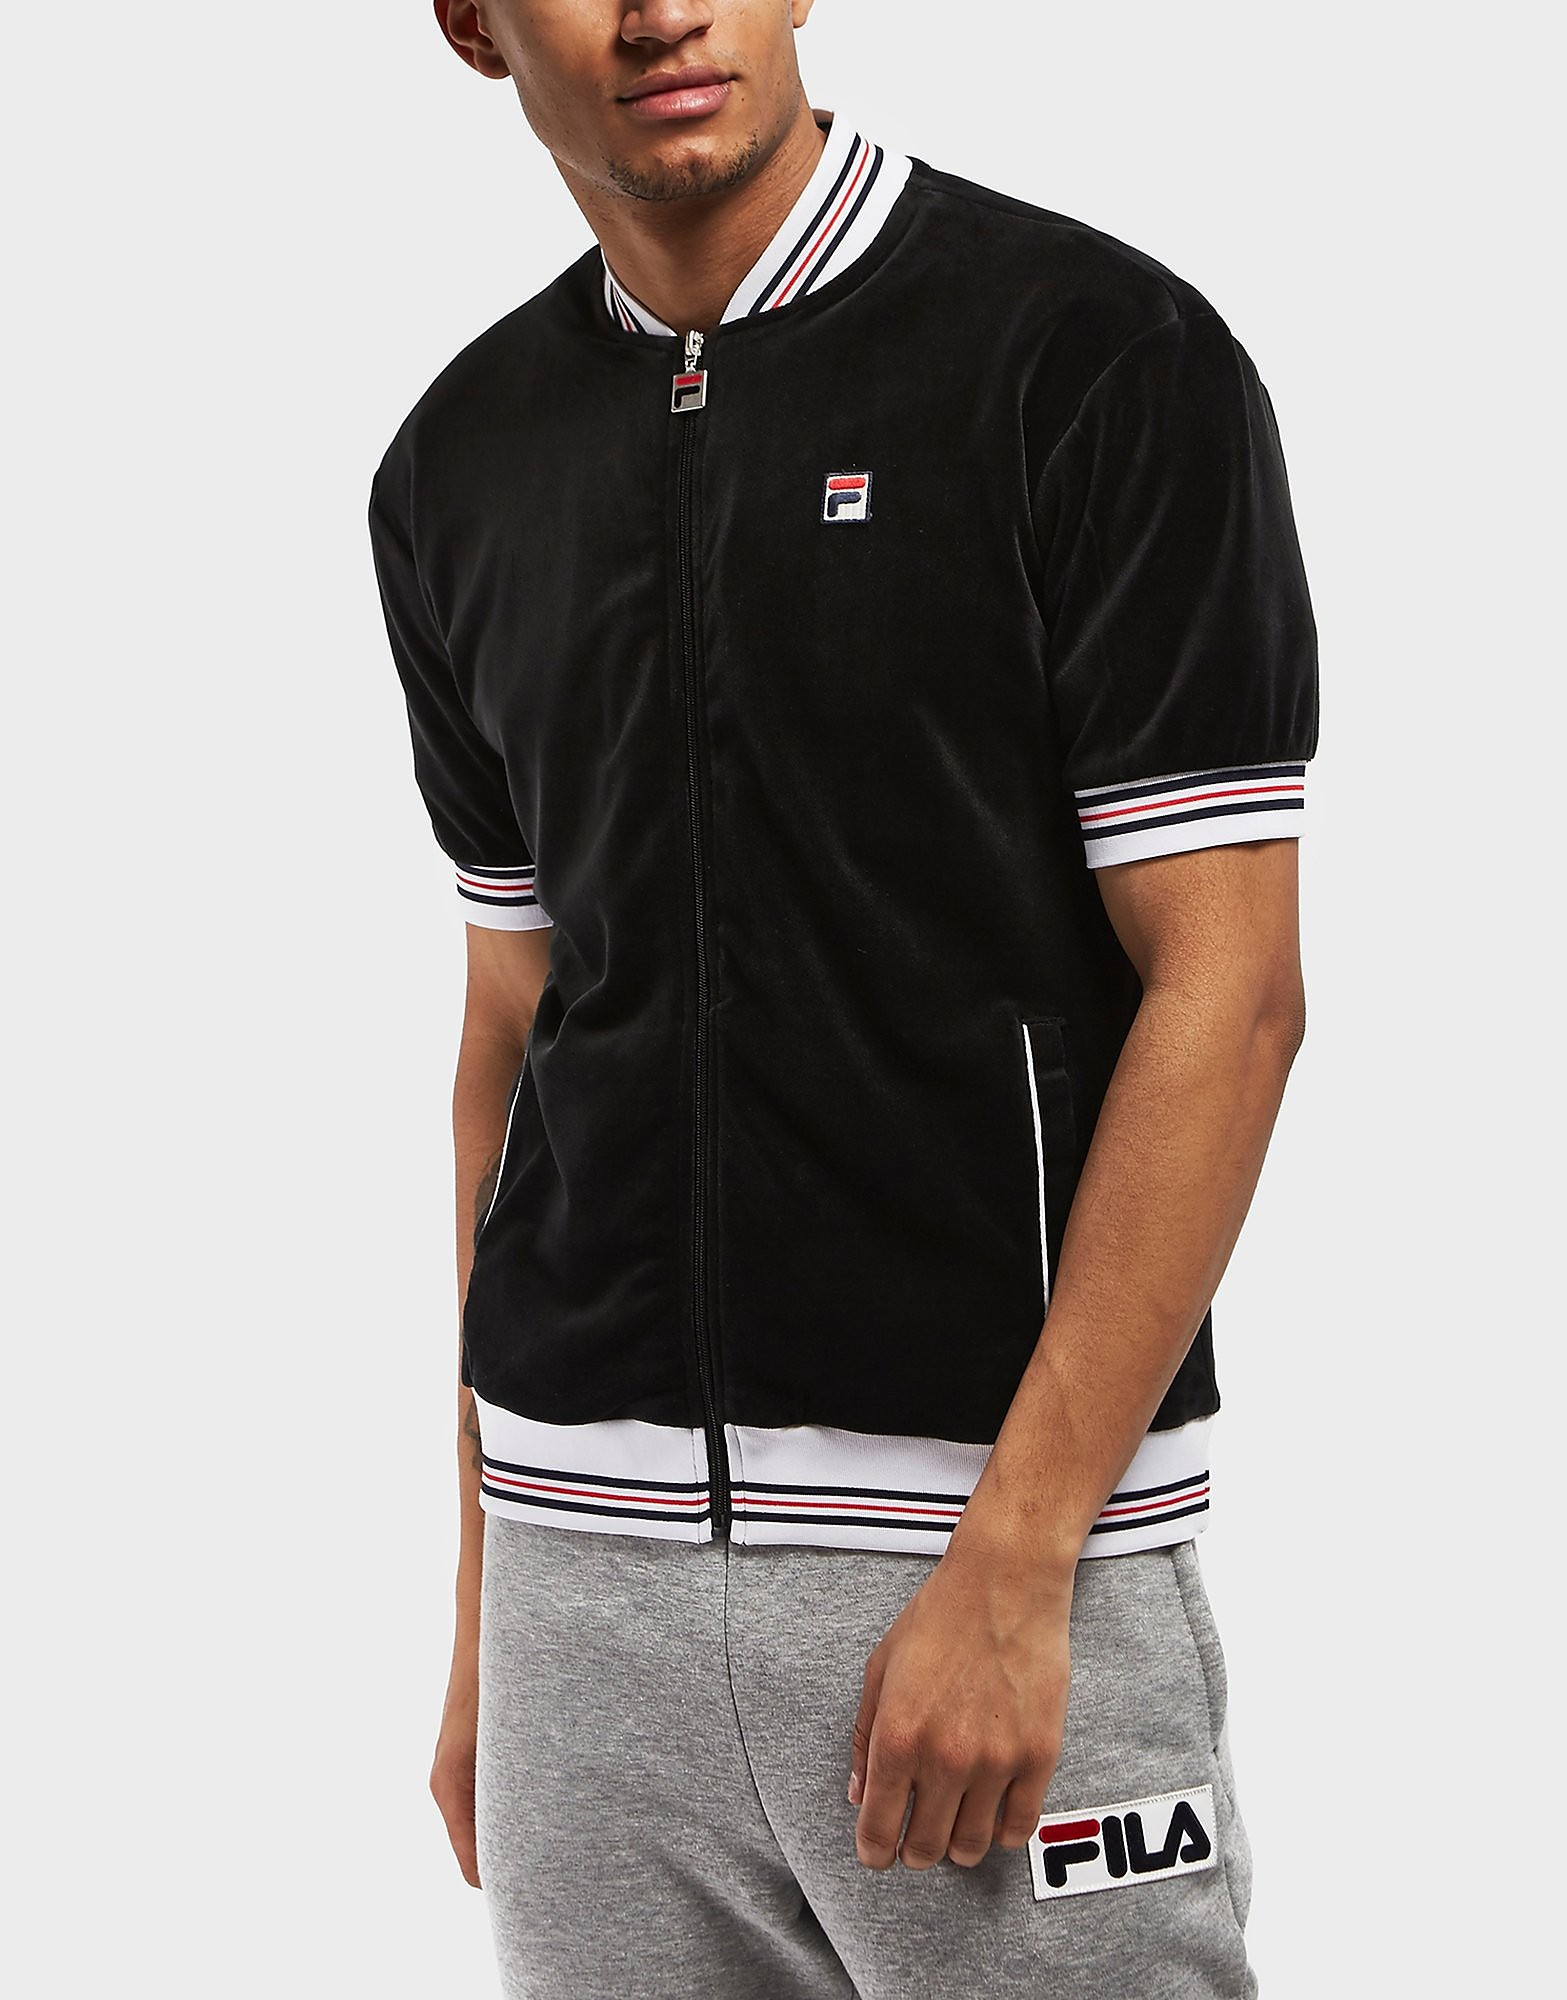 Fila Carezzi Velour Short Sleeve Track Top